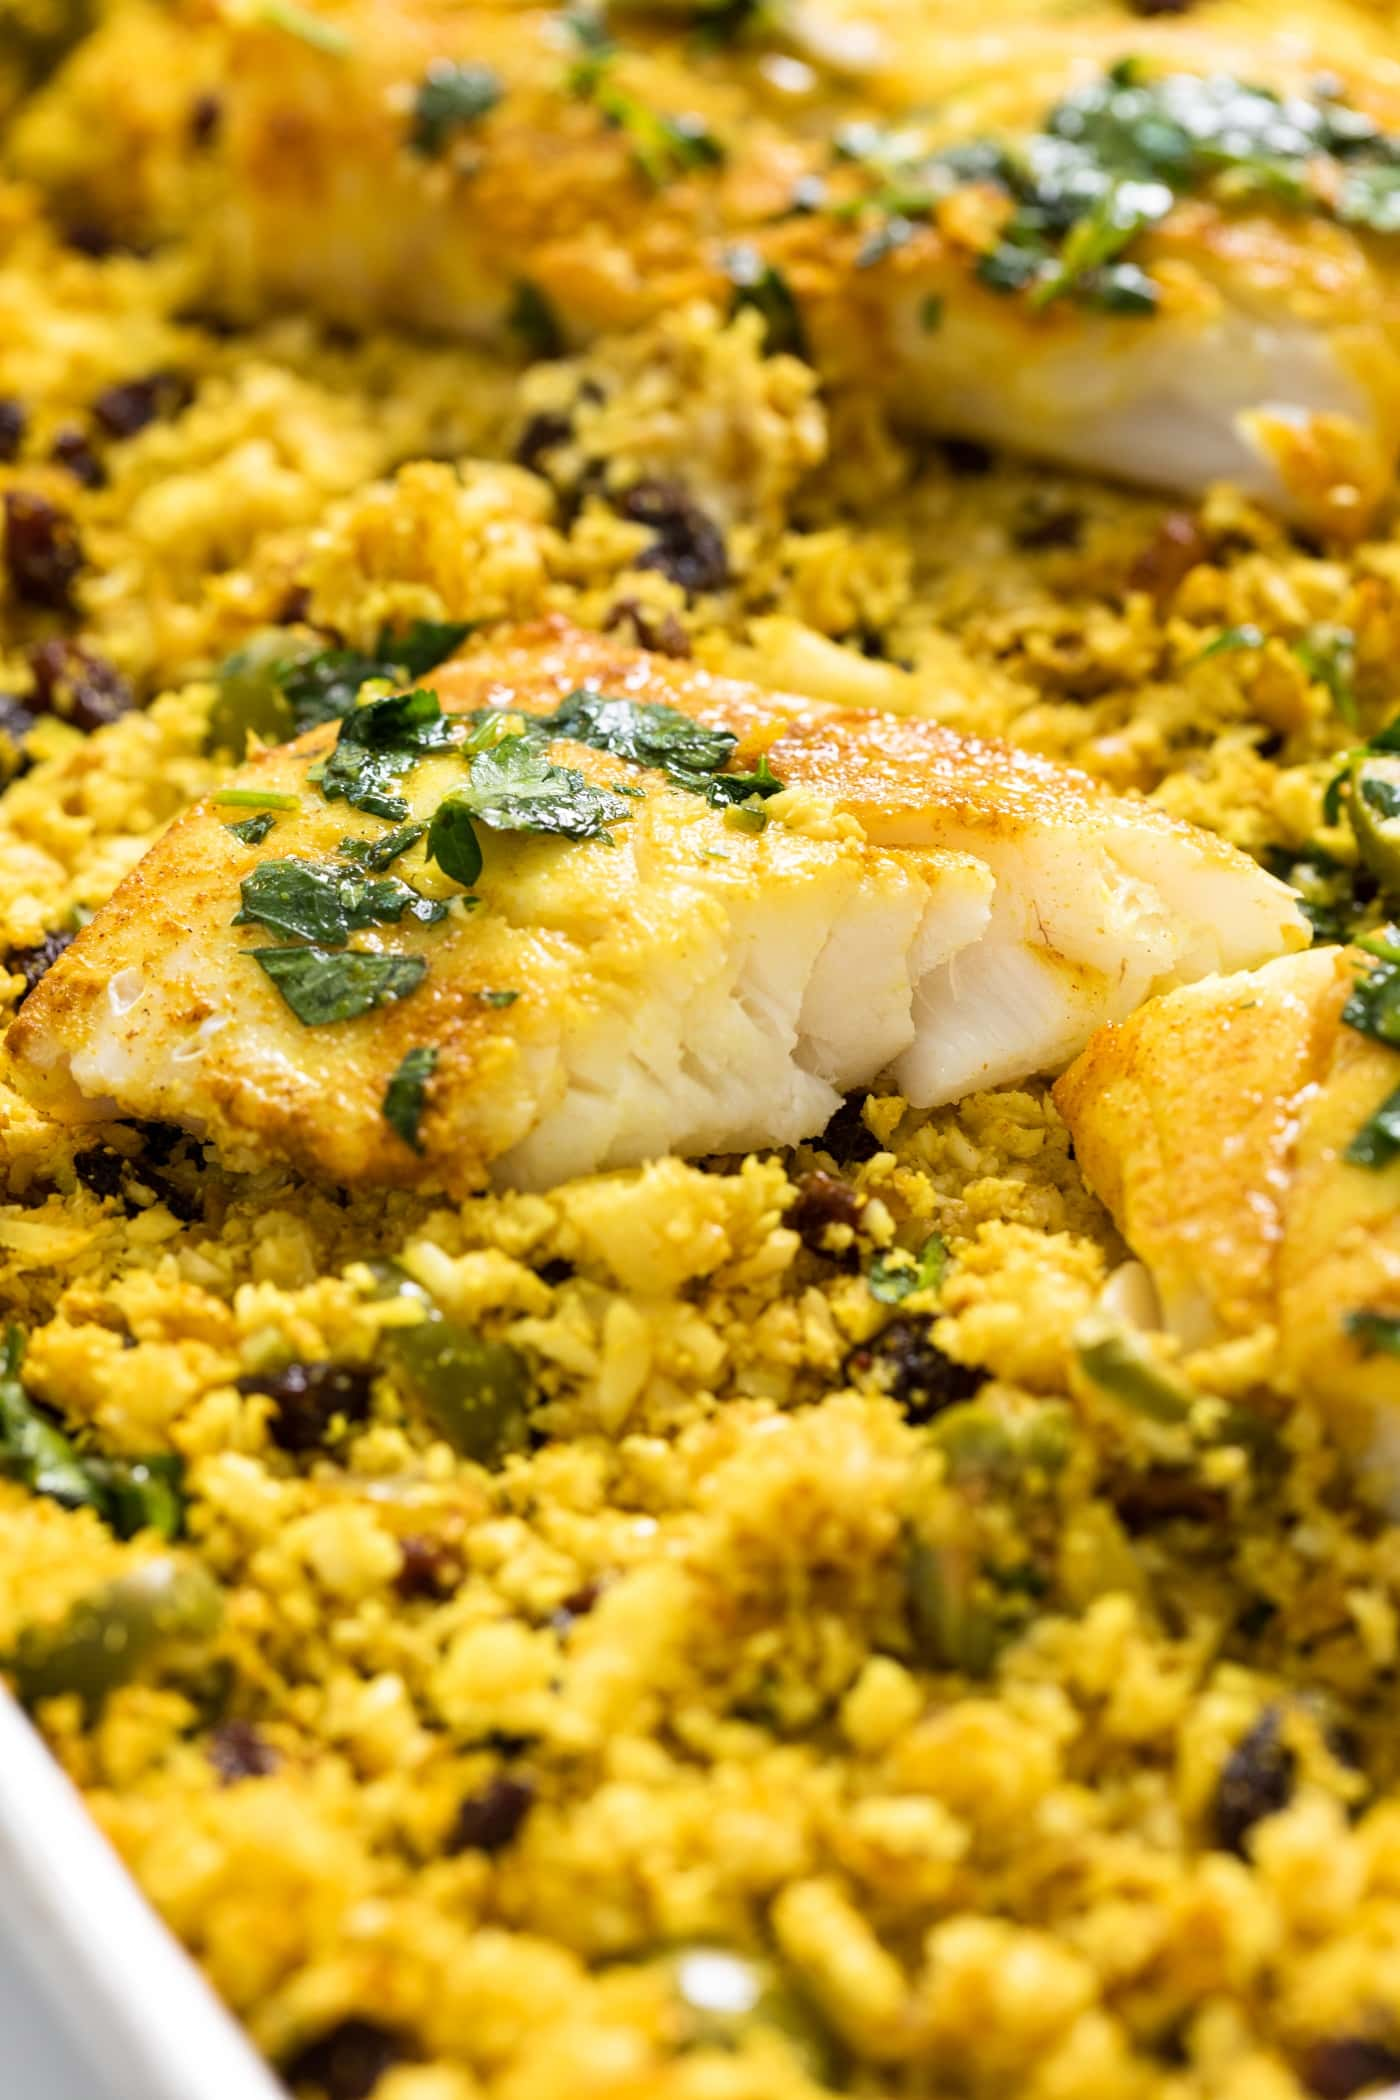 Piece of fish split in half sitting on bed of yellow cauliflower rice with green mix on top